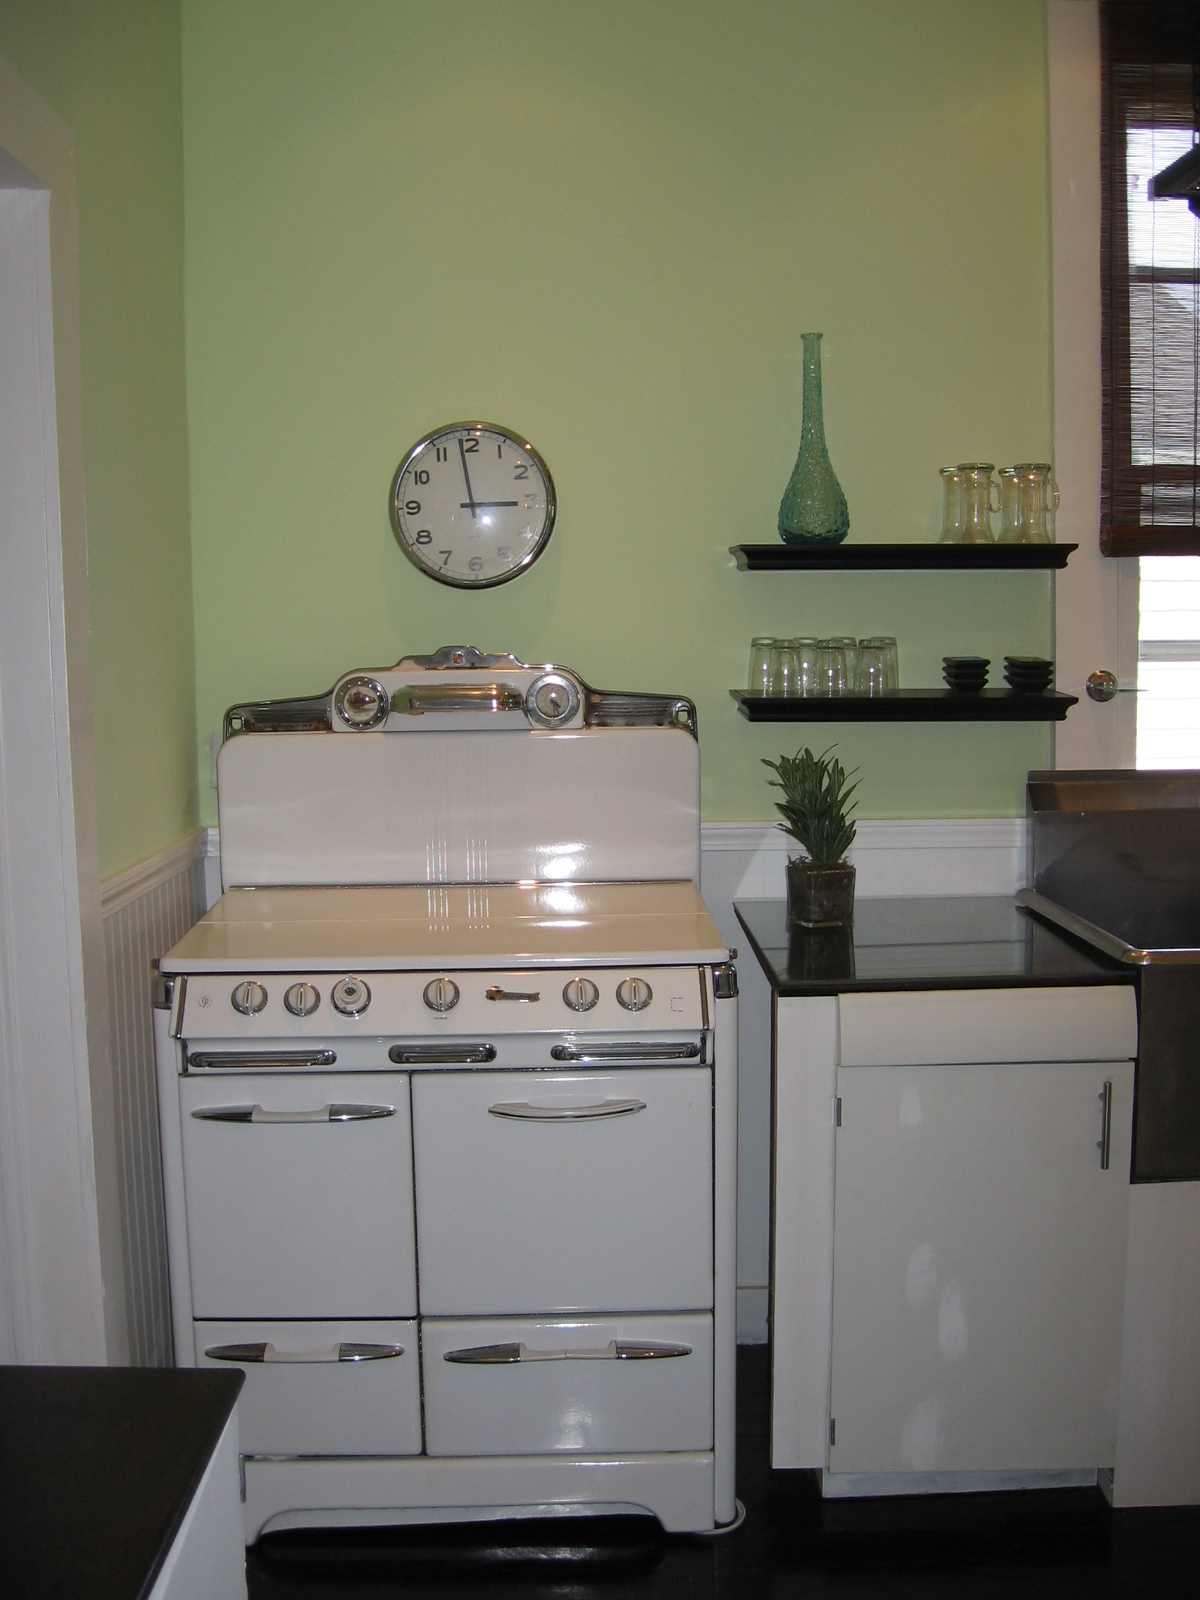 File New Orleans after kitchen vintage stove